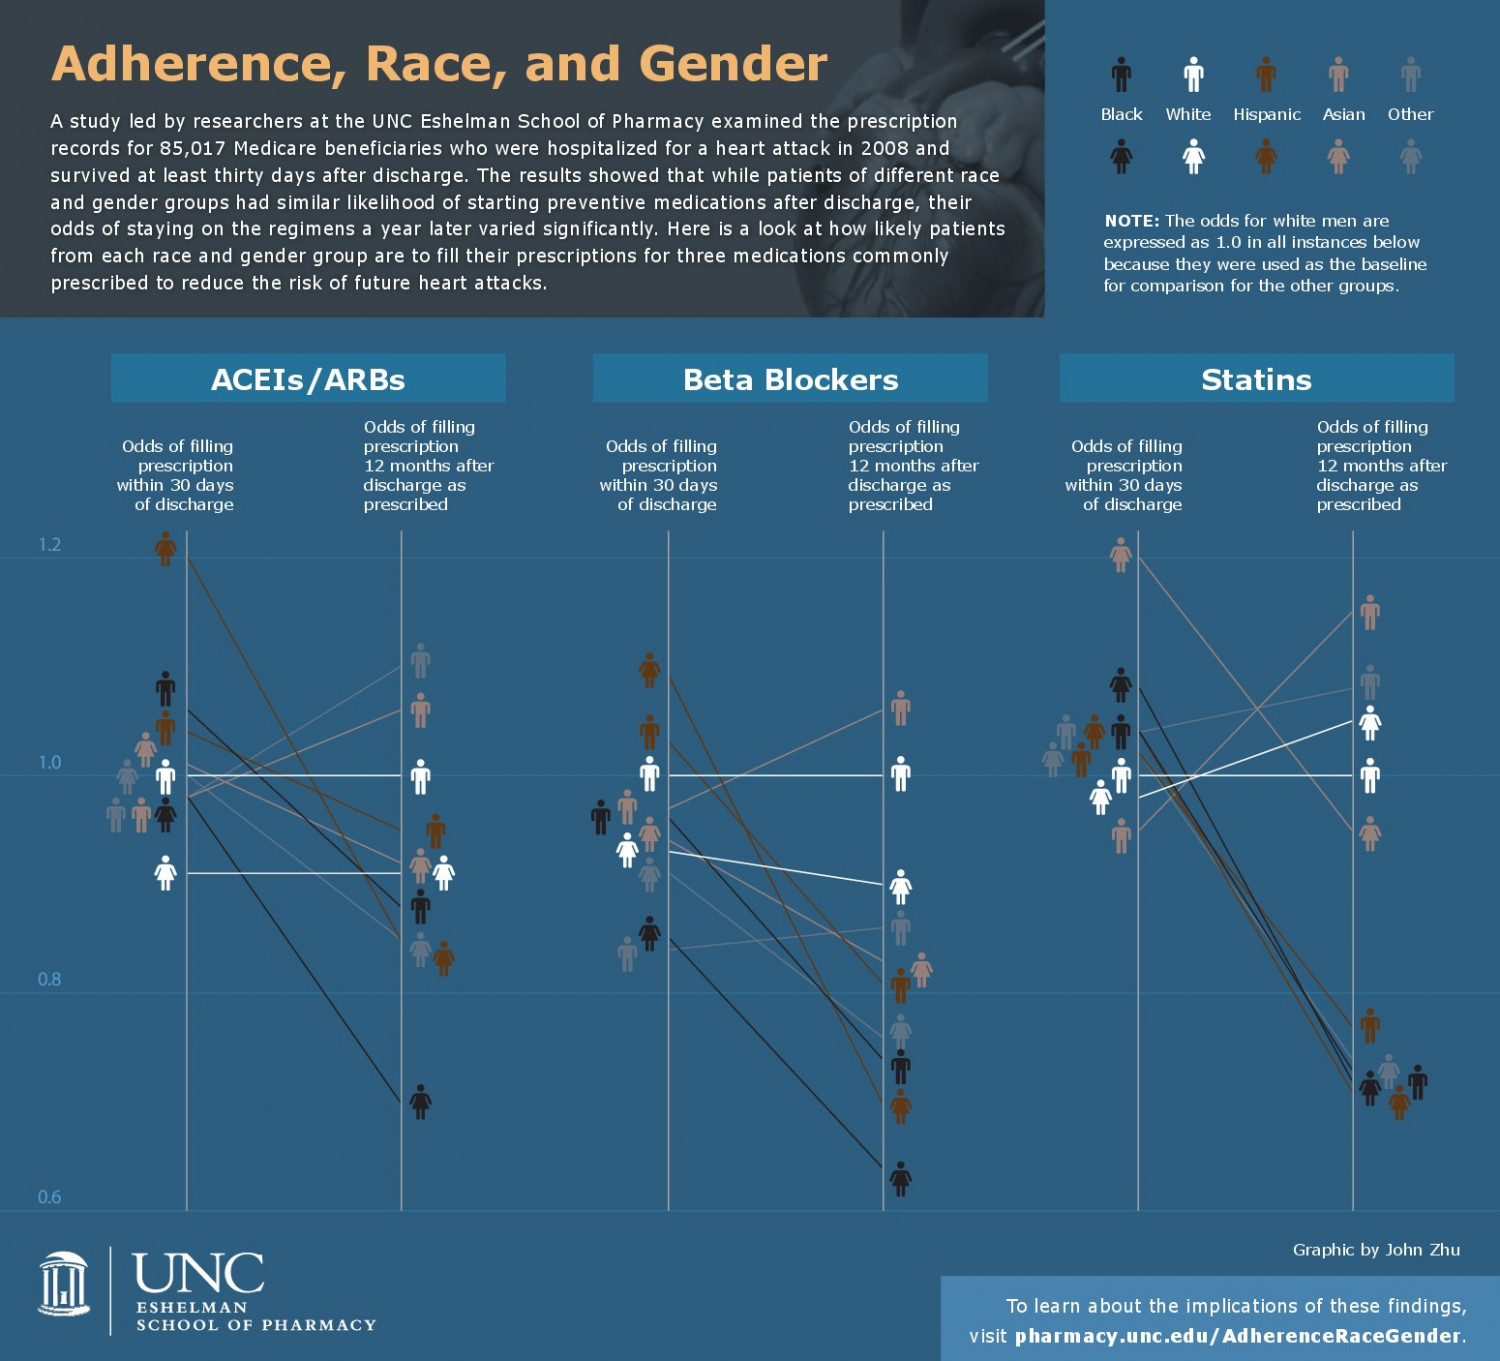 Adherence, Race, and Gender Infographic